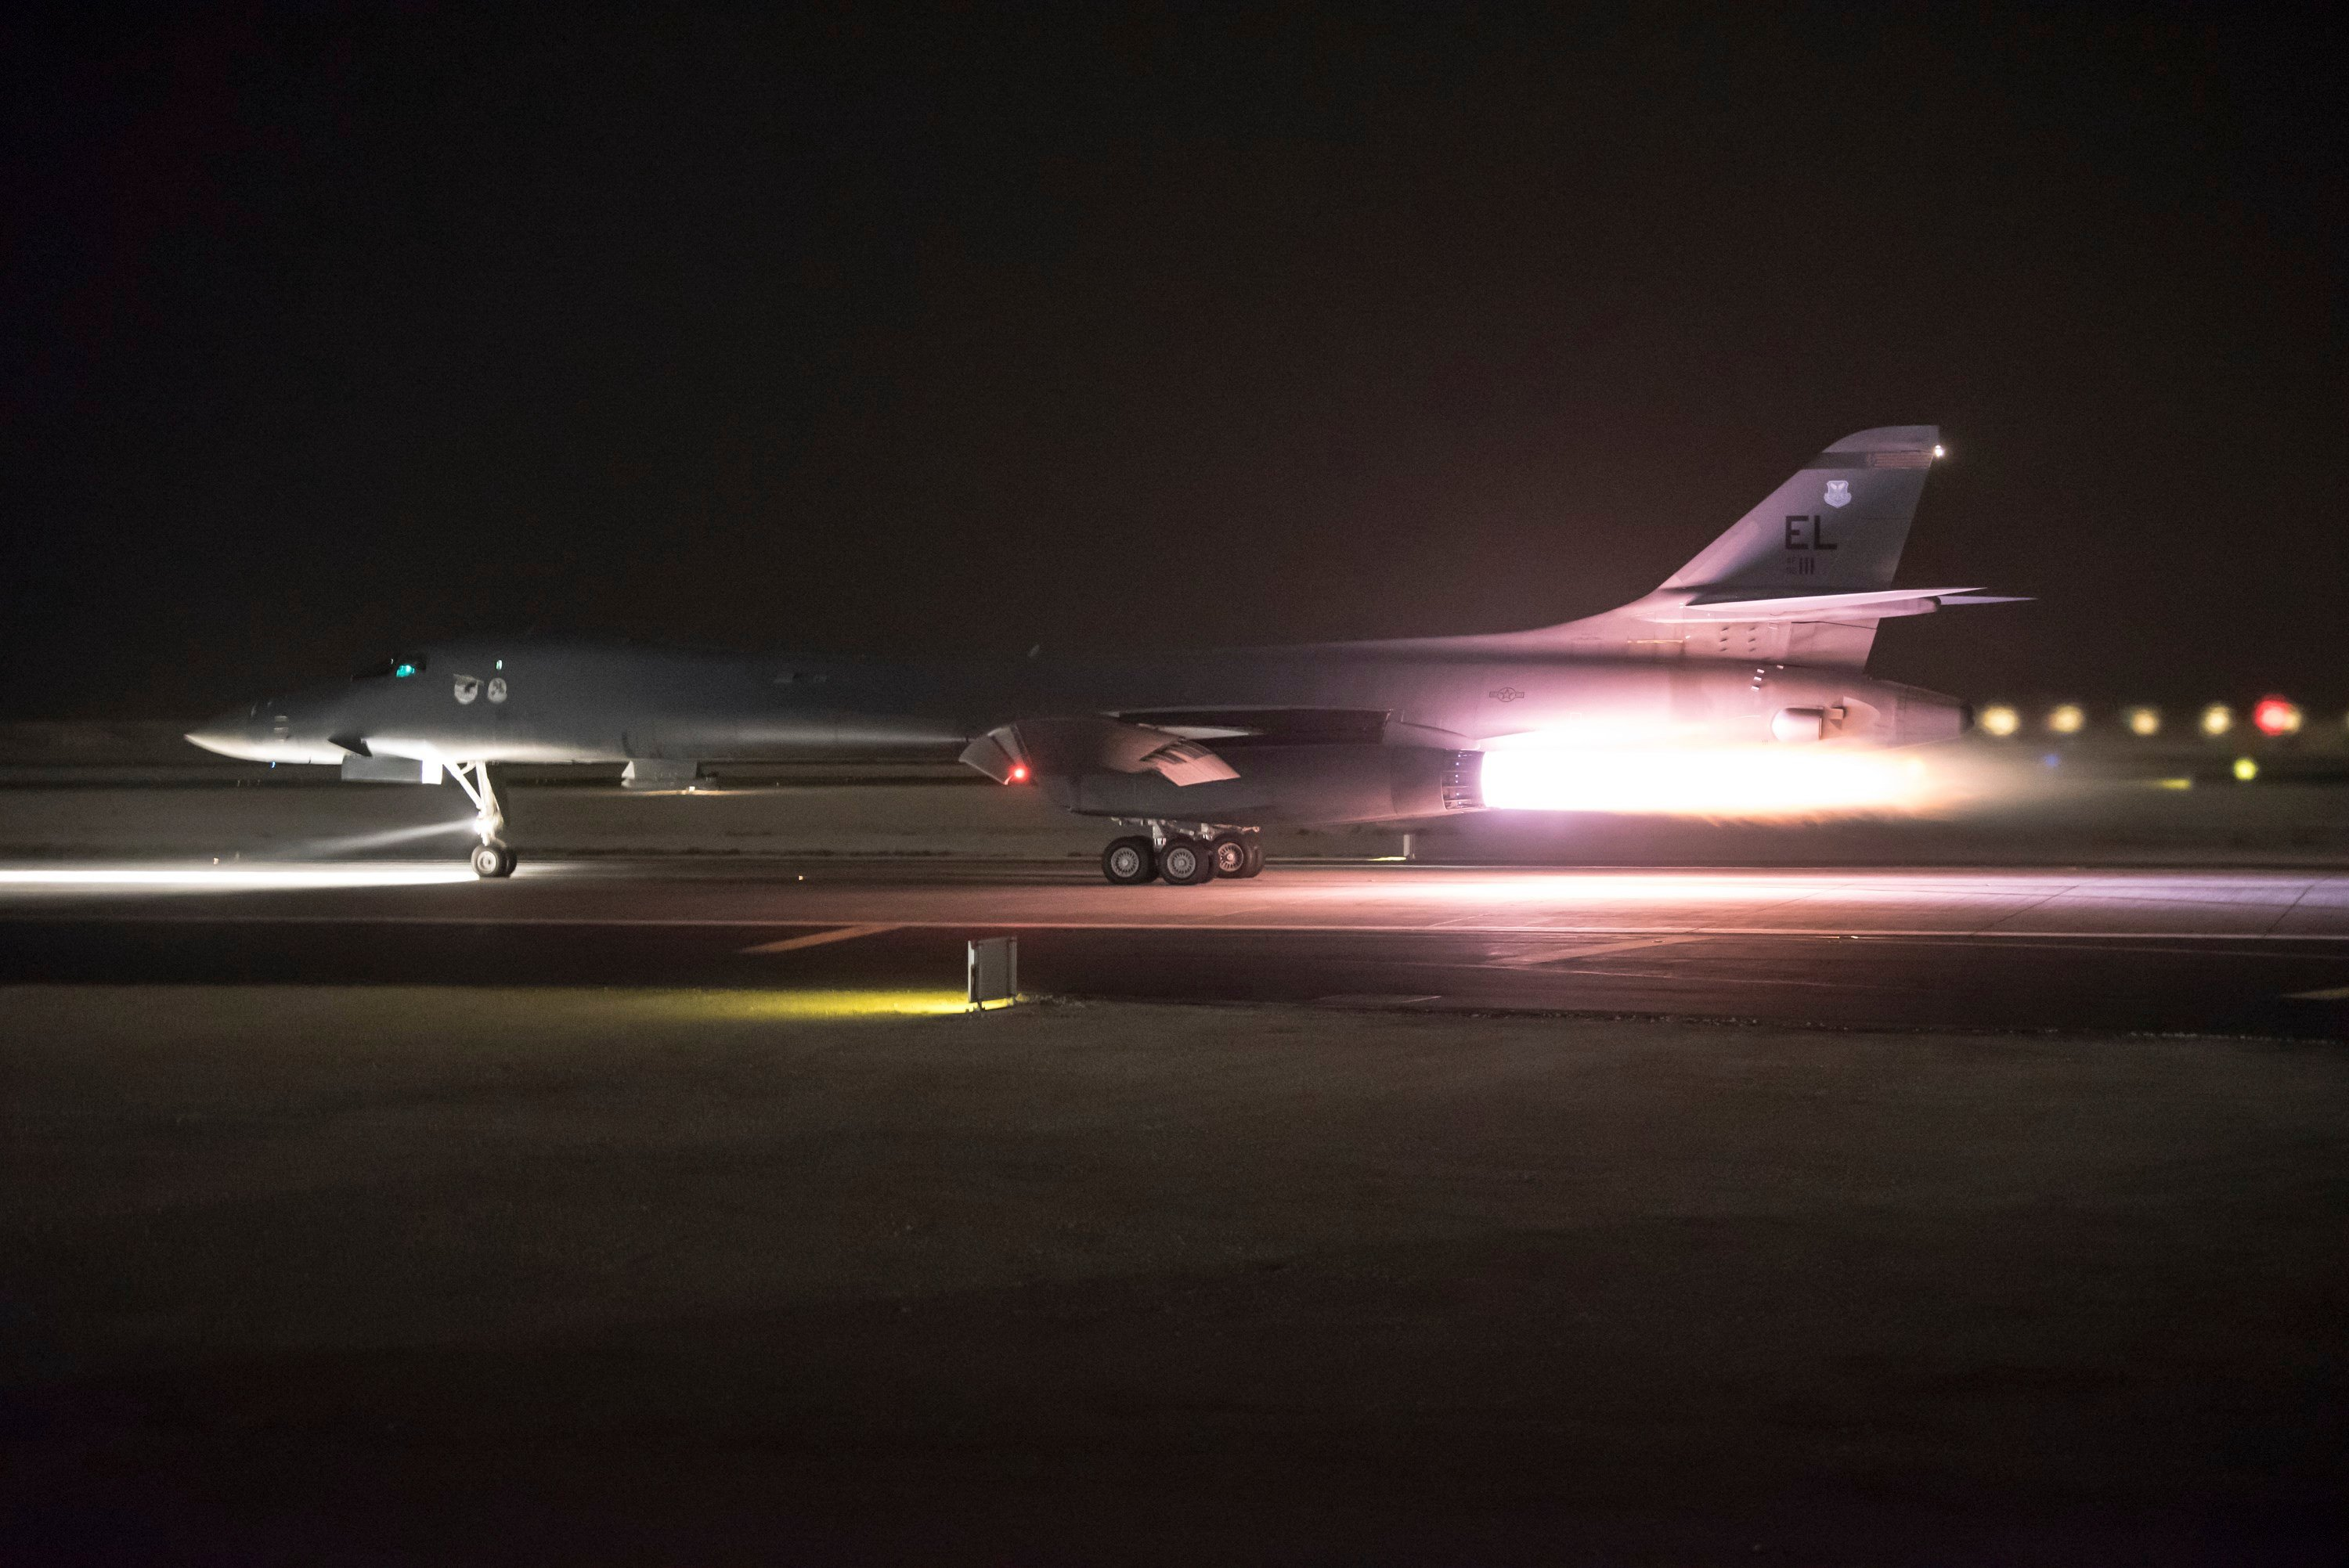 This photo provided by the U.S. Air National Guard shows 34th Expeditionary Bomb Squadron B-1B Lancer aircraft departing from Al Udeid Air Base, Qatar, early Saturday, April 14. (Master Sgt. Phil Speck/U.S. Air National Guard via AP)